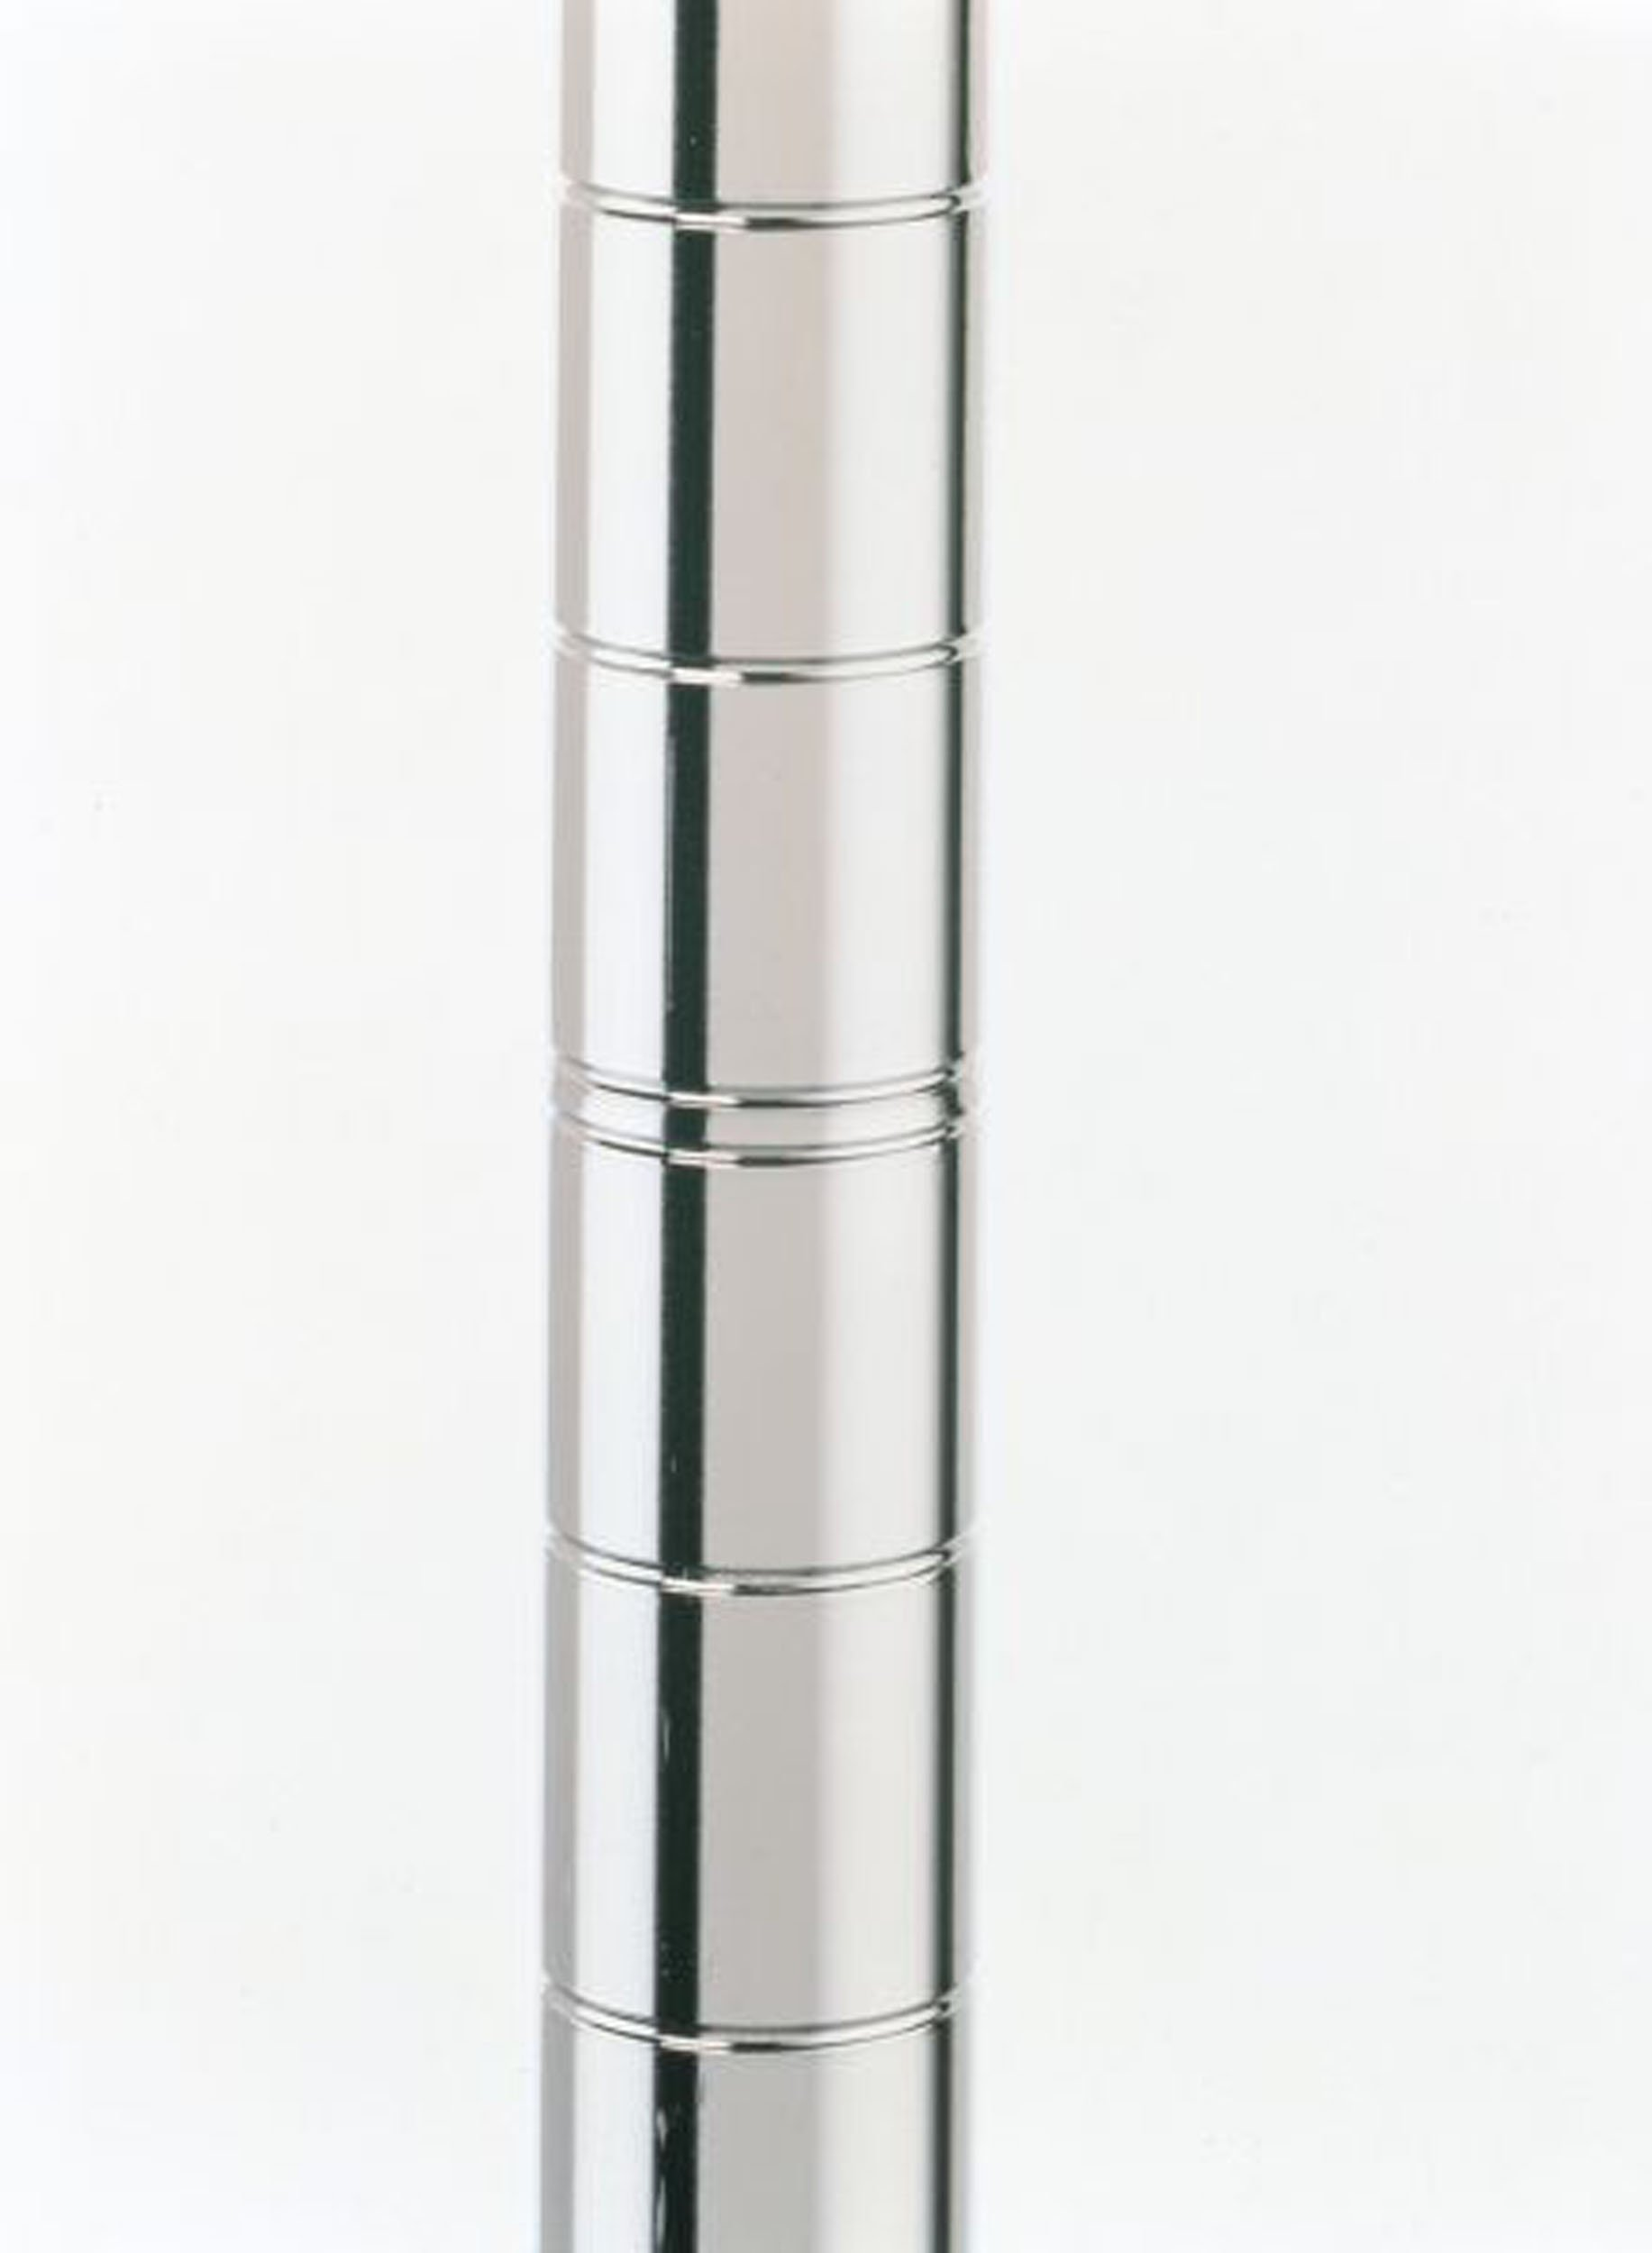 Metro 86UP Metro Site Select Chrome Plated Steel Mobile Post, 1'' Diameter x 86-5/8'' Height (Pack of 4)